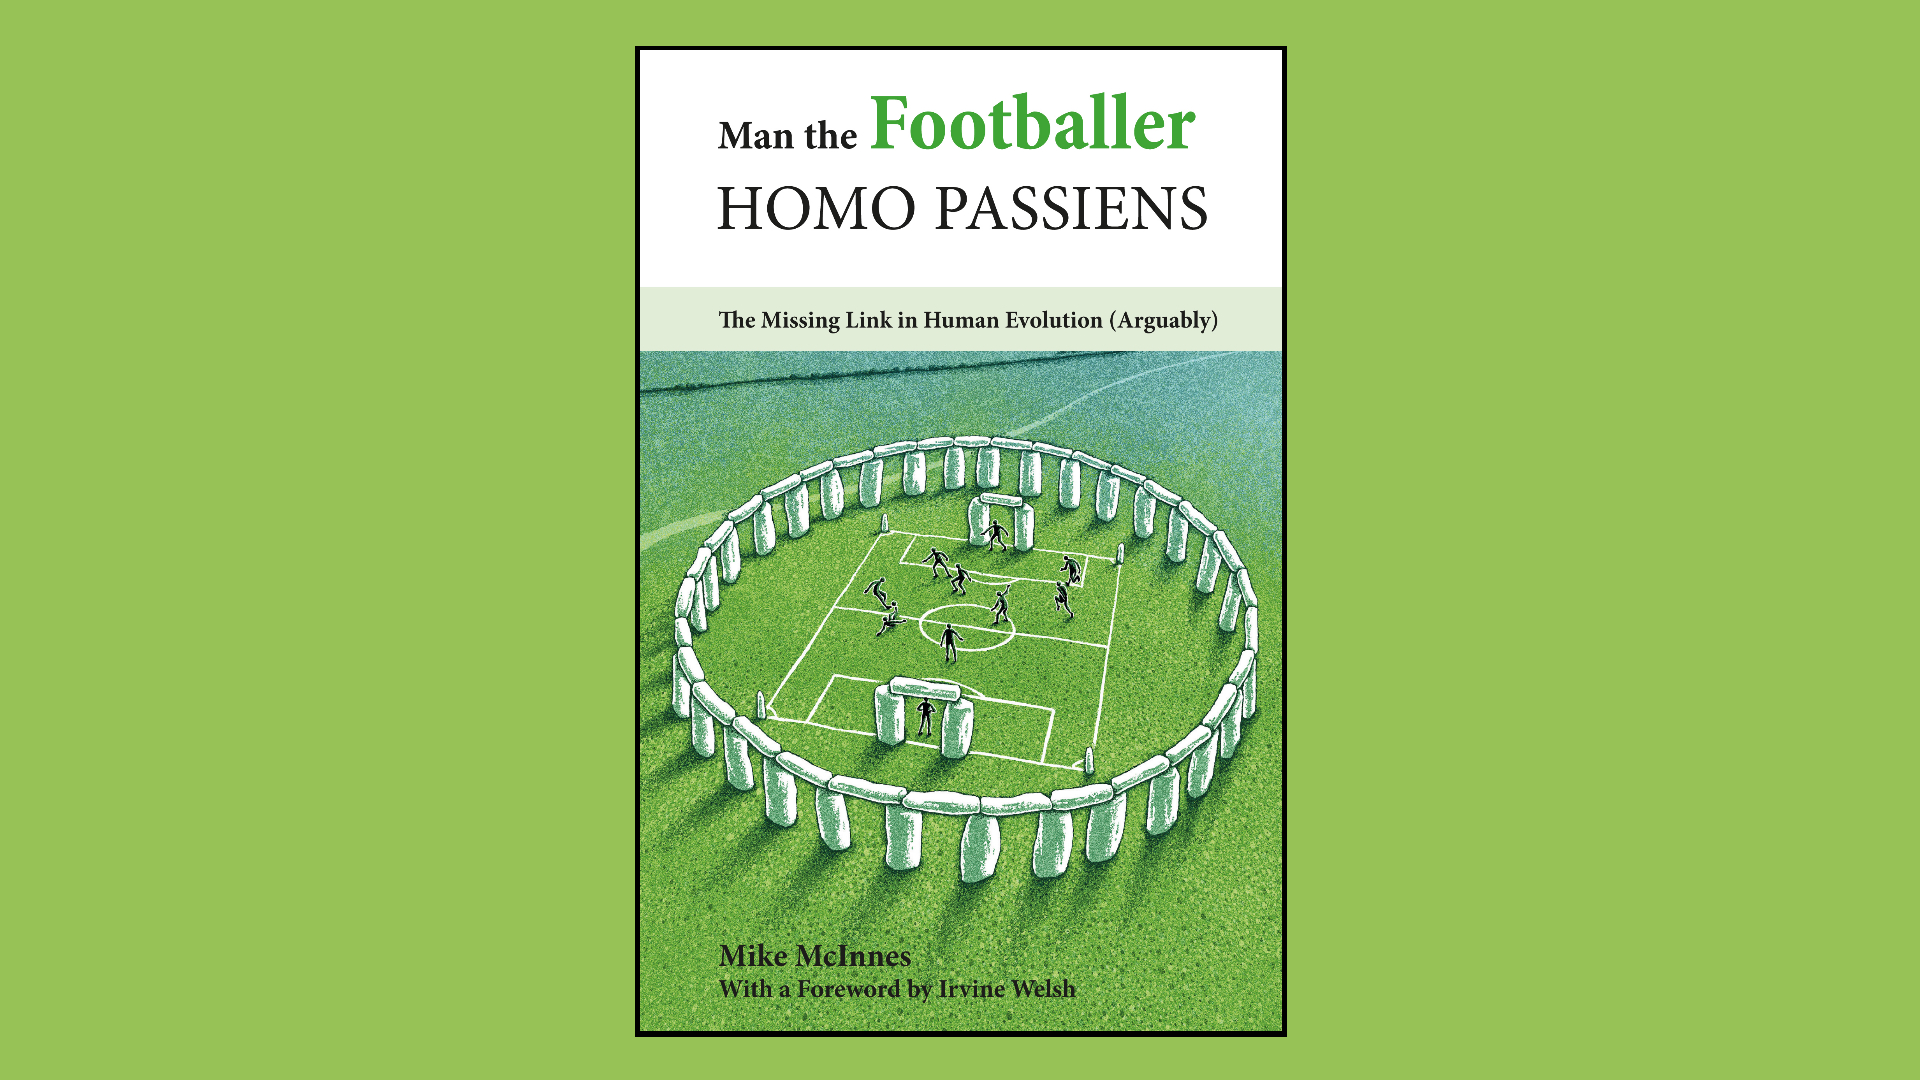 Man the Footballer: Homo Passiens